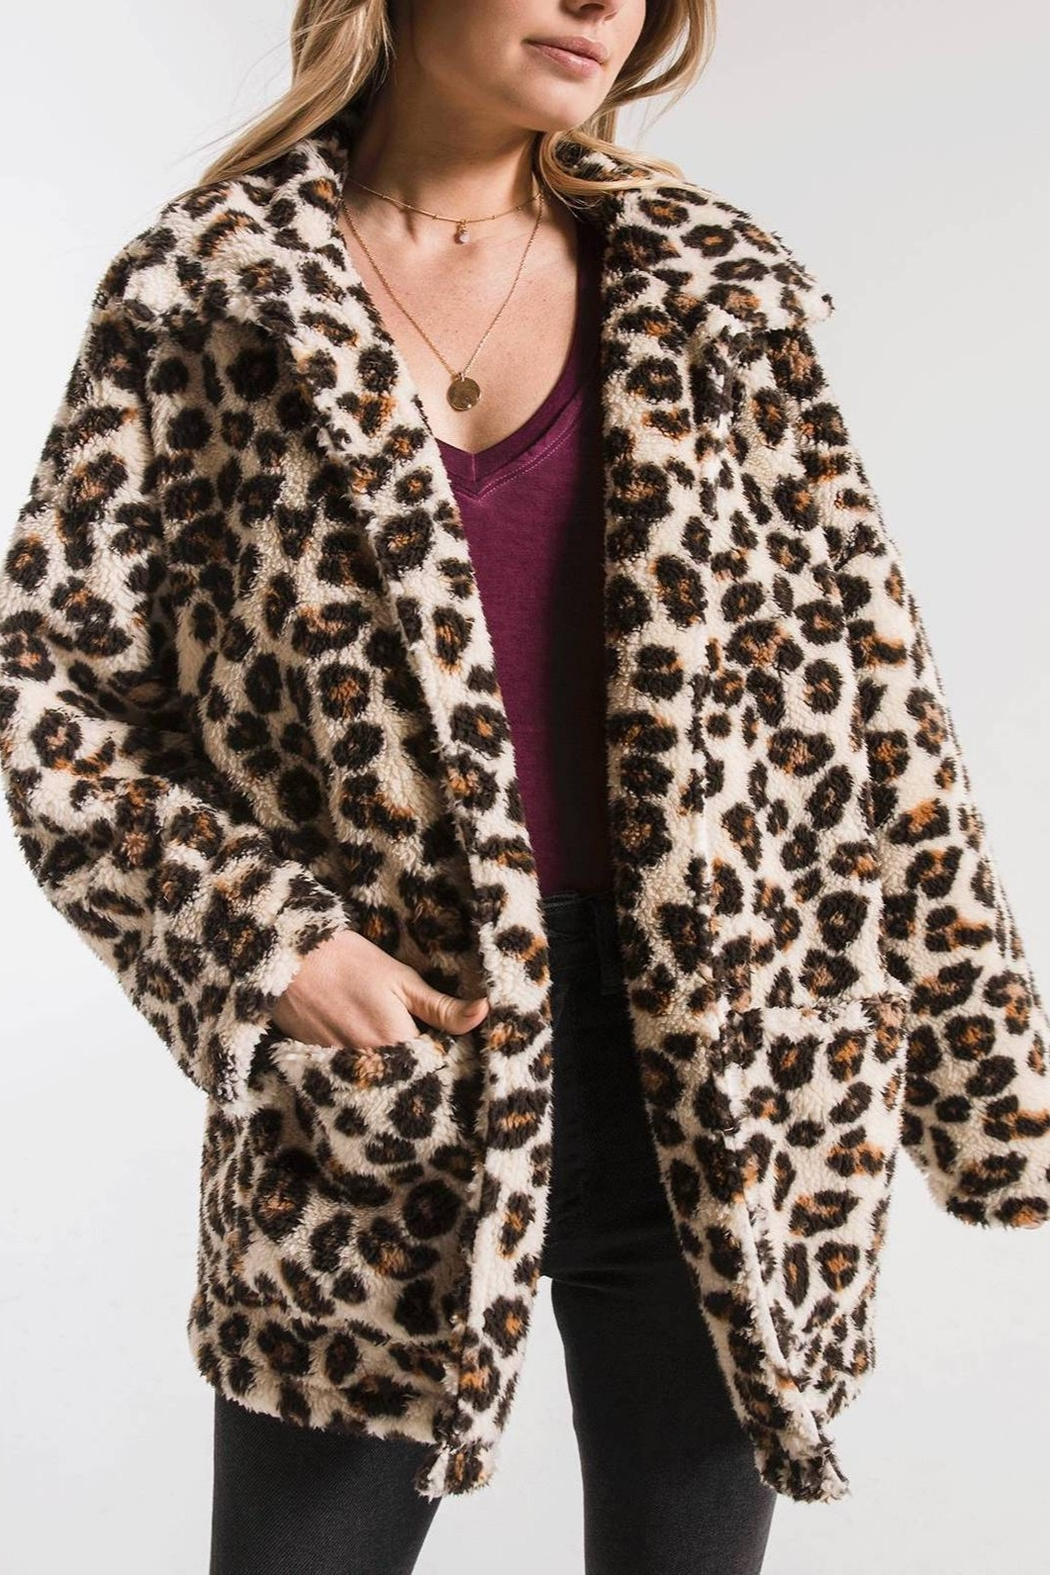 z supply Leopard Sherpa TB Coat - Back Cropped Image